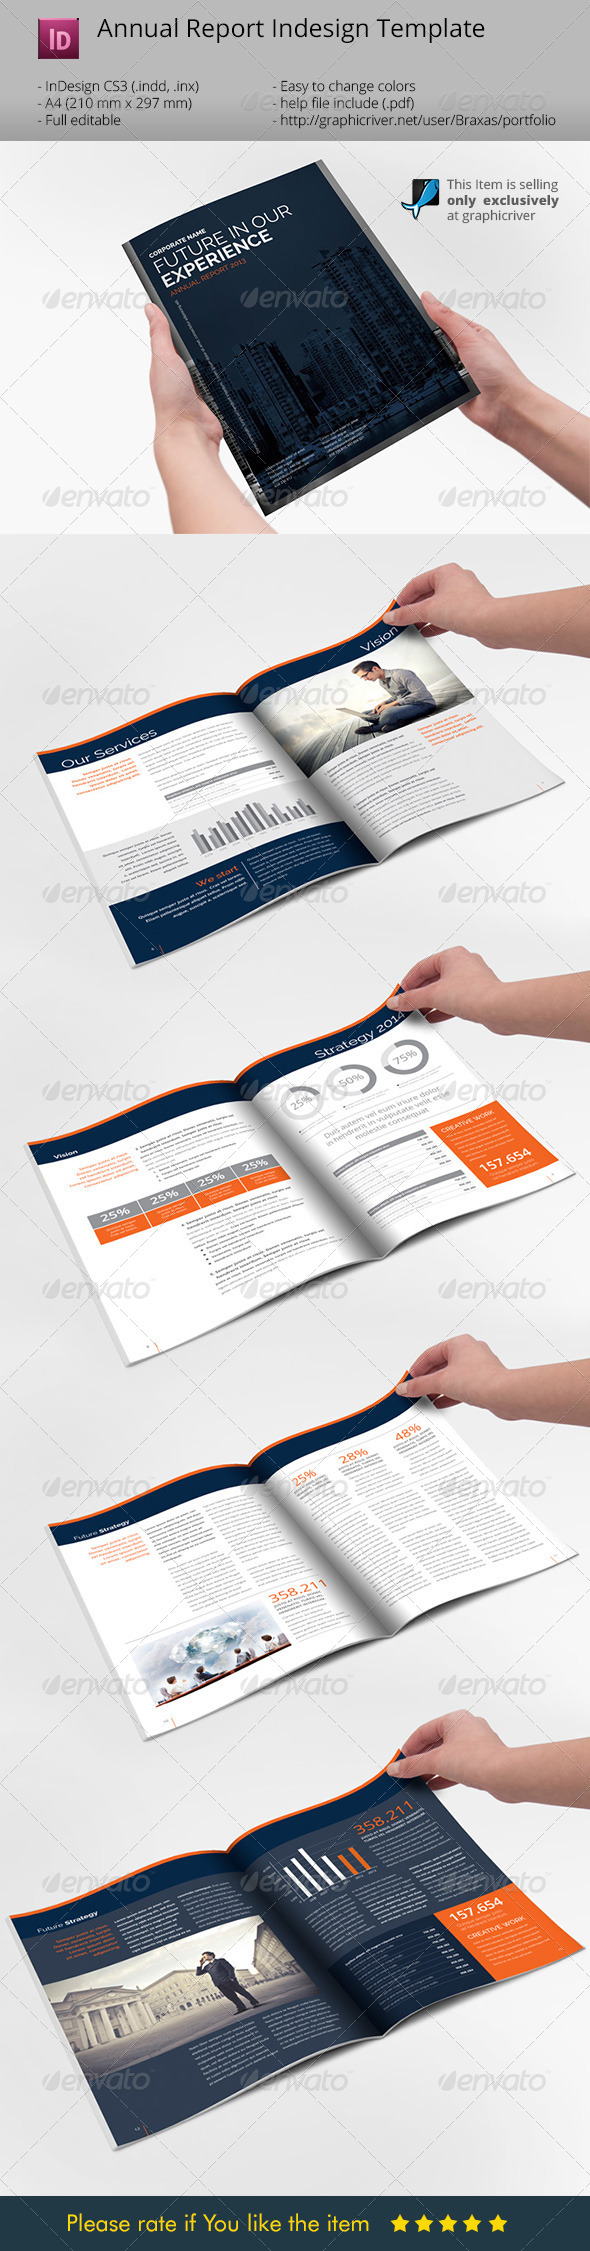 GraphicRiver Annual Report Indesign Template 6704295